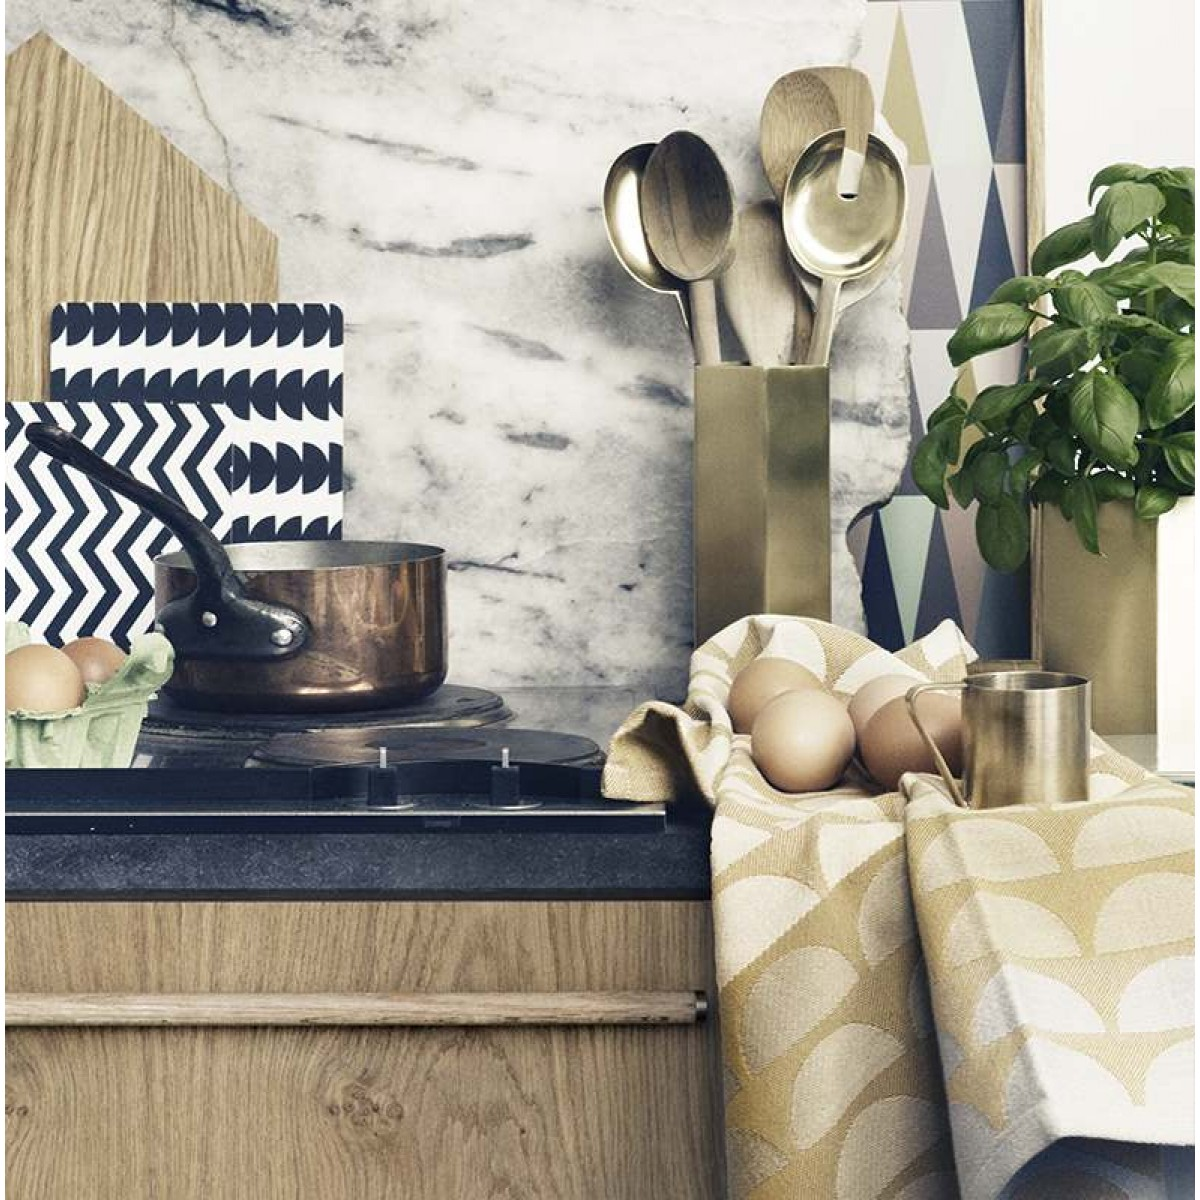 Sweeten Your Live with Ferm Living USA for Chic and Playful Home Nuance